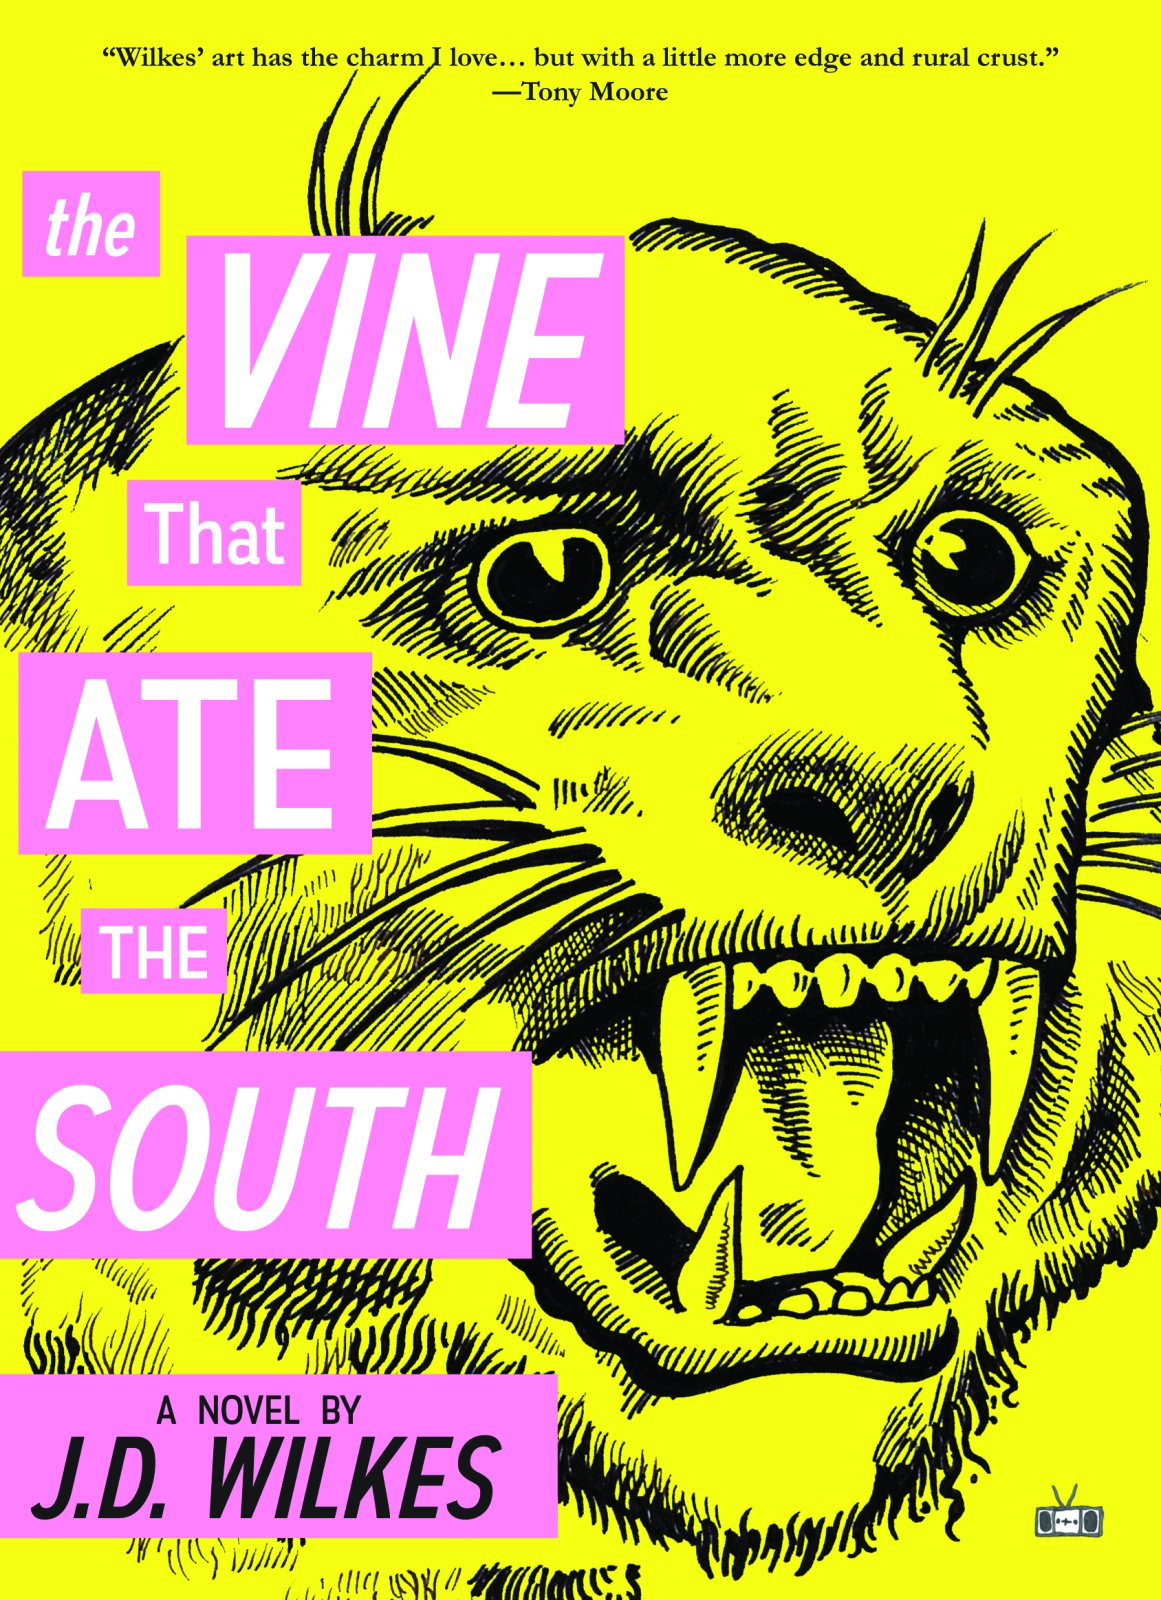 The Vine that Ate the South by J. D. Wilkes